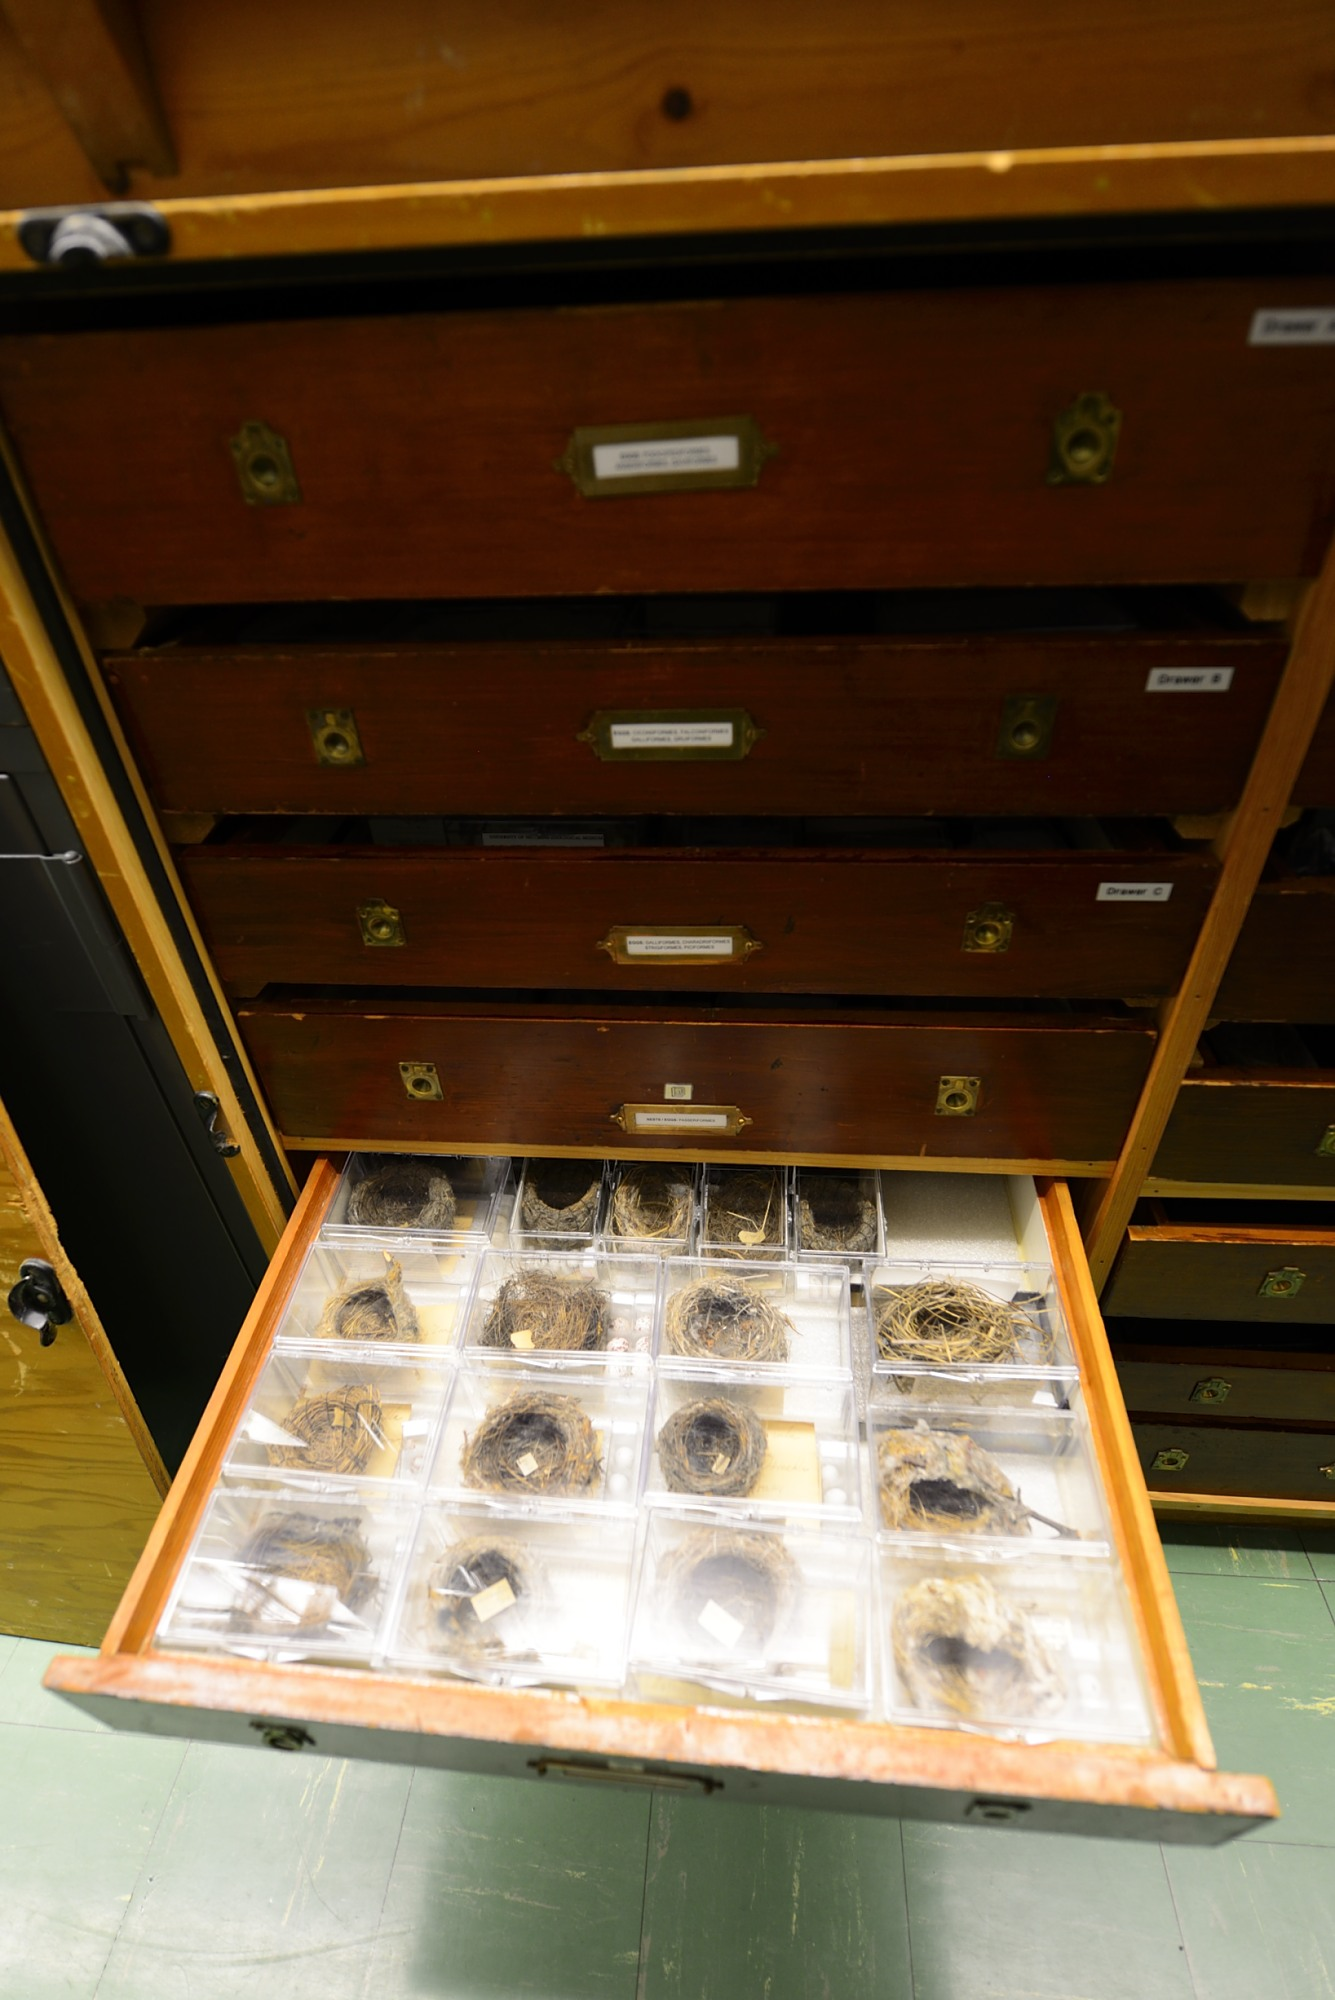 Nests in Boxes in Drawers